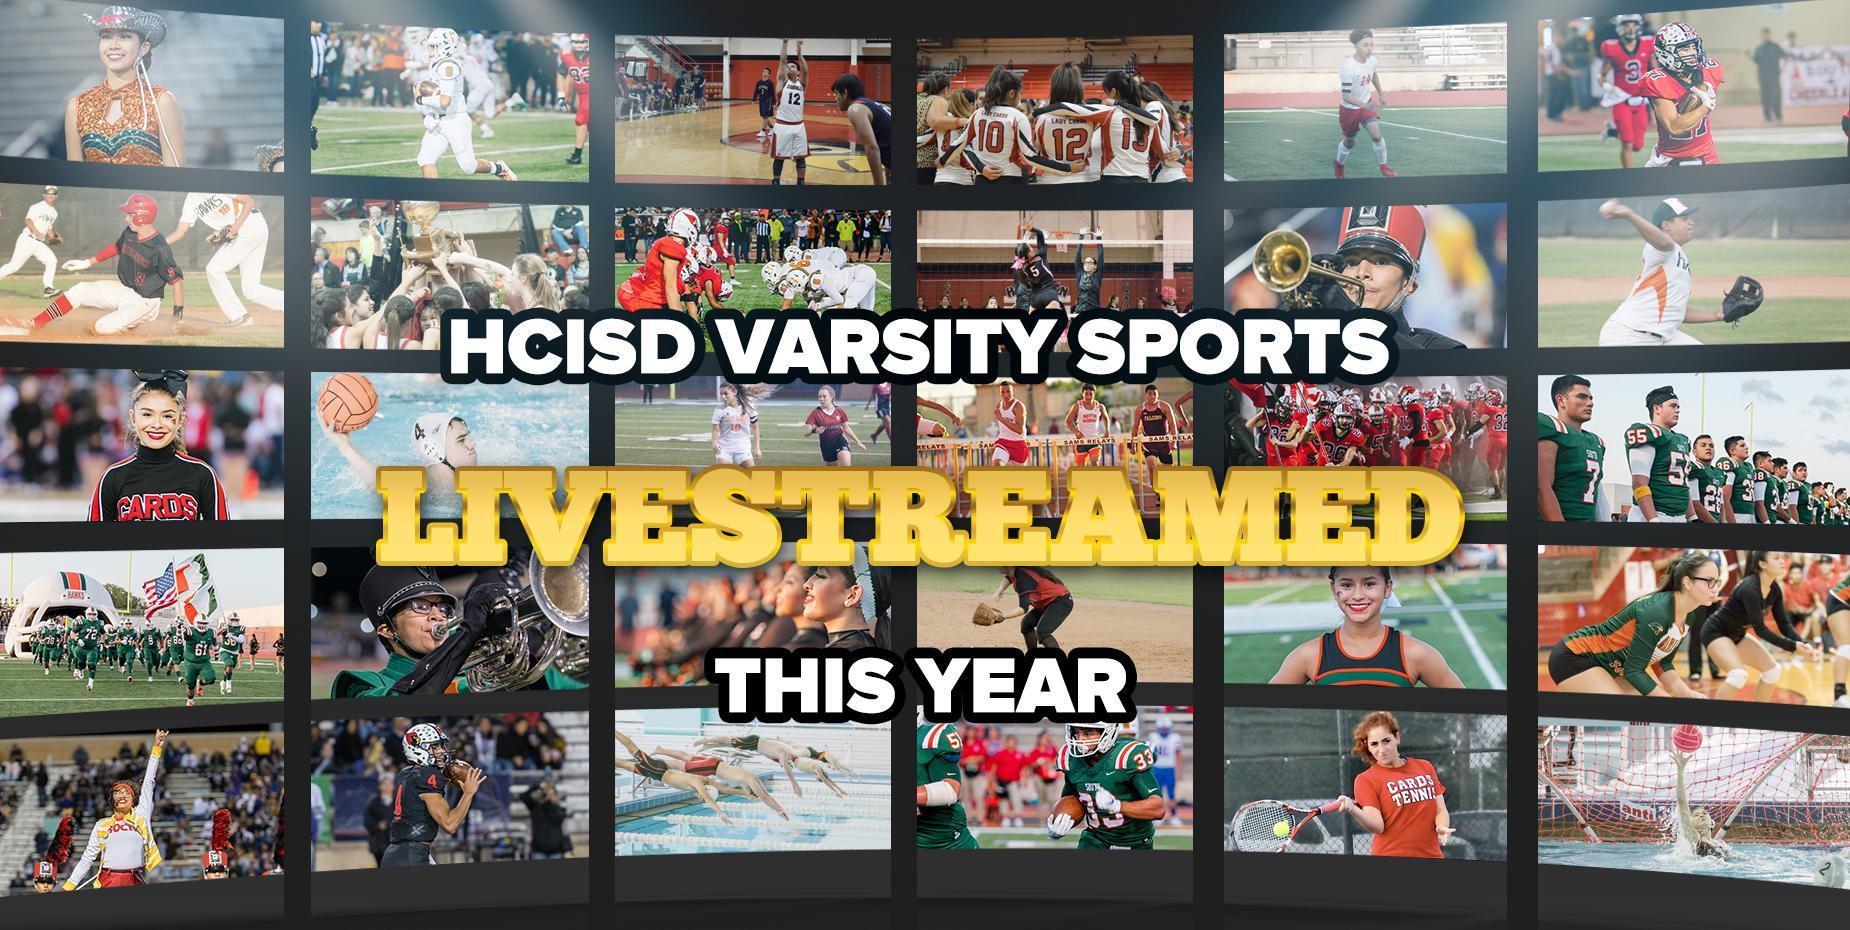 HCISD varsity sports will be livestreamed this year